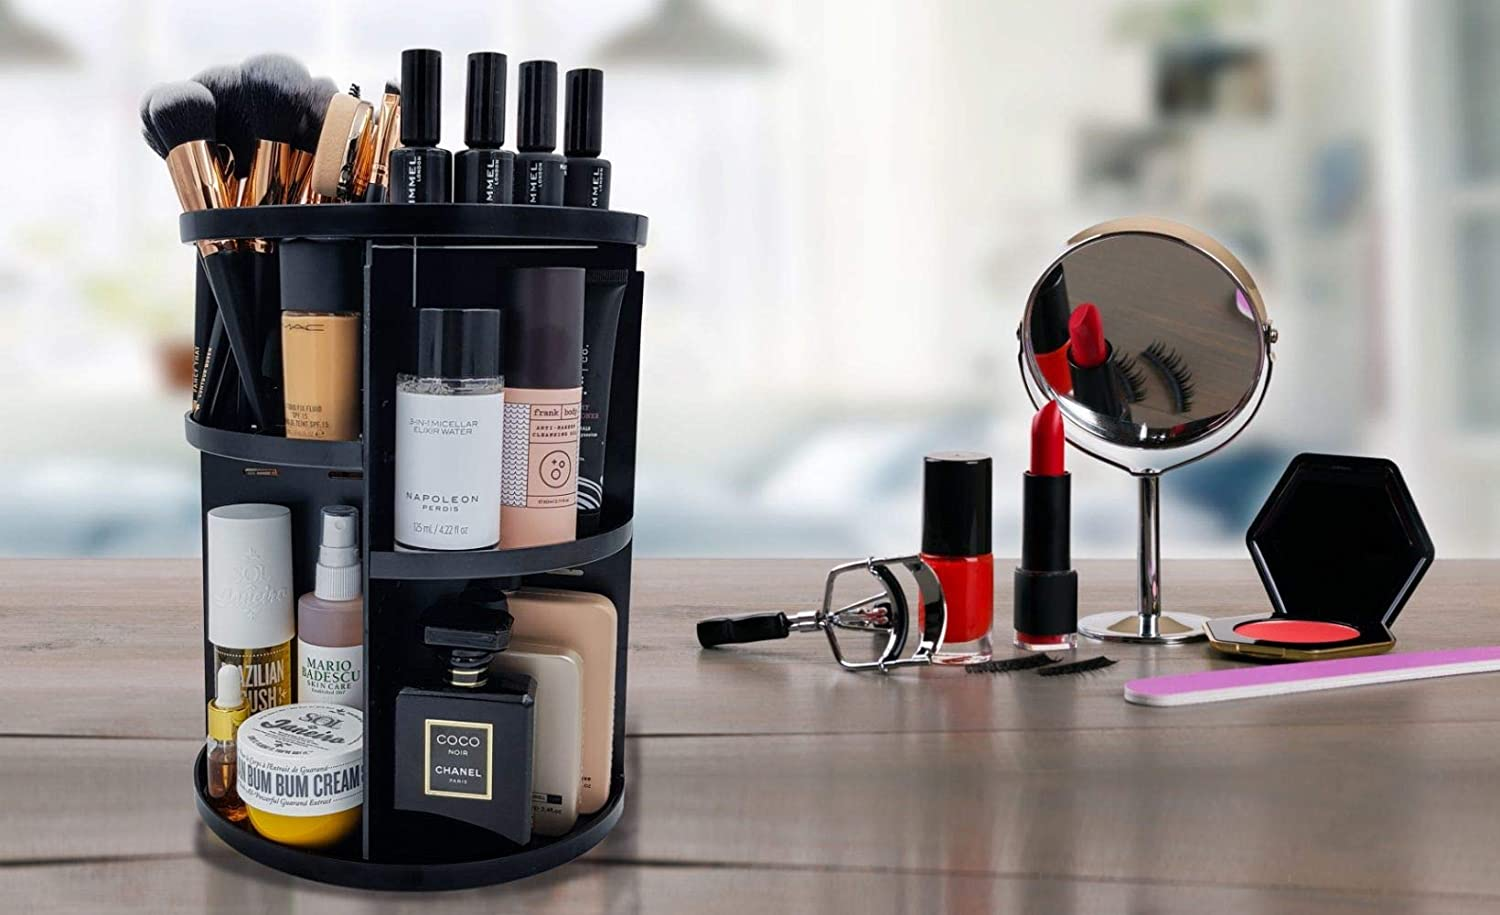 Luxx Chicc 360 Rotating Makeup Organizer, Cosmetics Carousel with 8 Cubbies Eliminates Bathroom Countertop Clutter and Keeps Your Favorite Beauty Products at Your Fingertips 12.2 H x 9.06 W